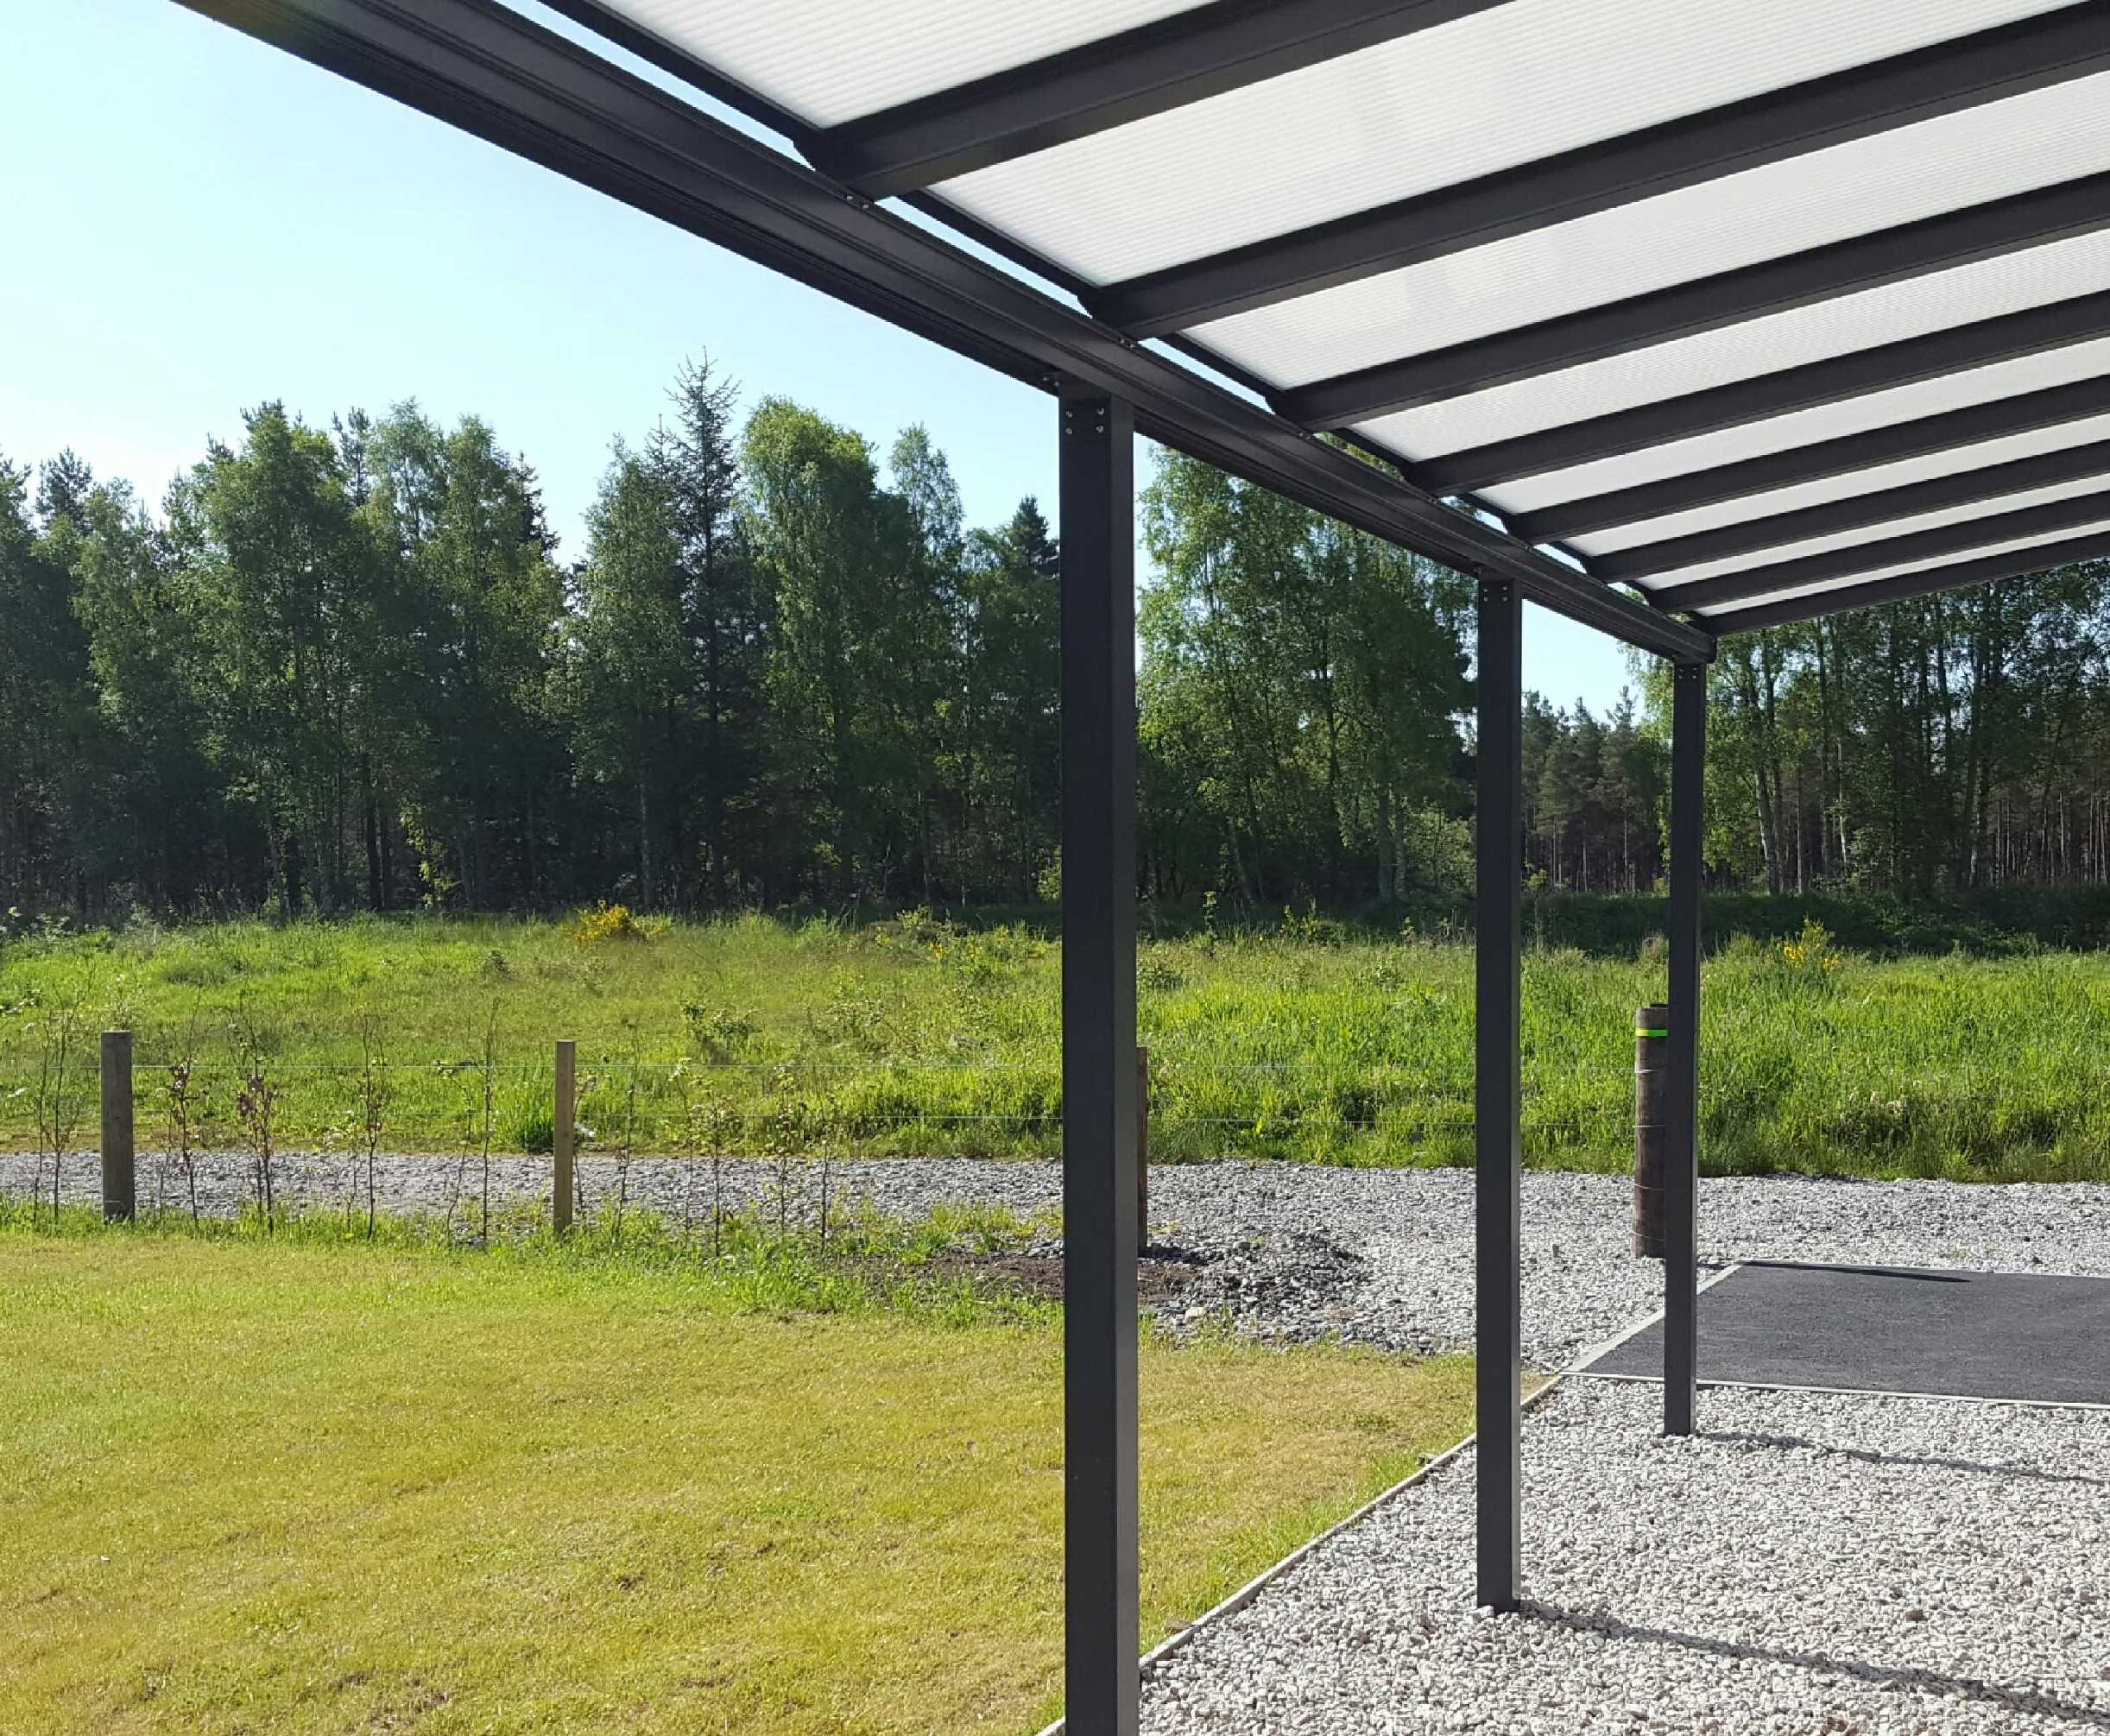 Omega Smart Lean-To Canopy, Anthracite Grey, 16mm Polycarbonate Glazing - 4.2m (W) x 2.0m (P), (3) Supporting Posts